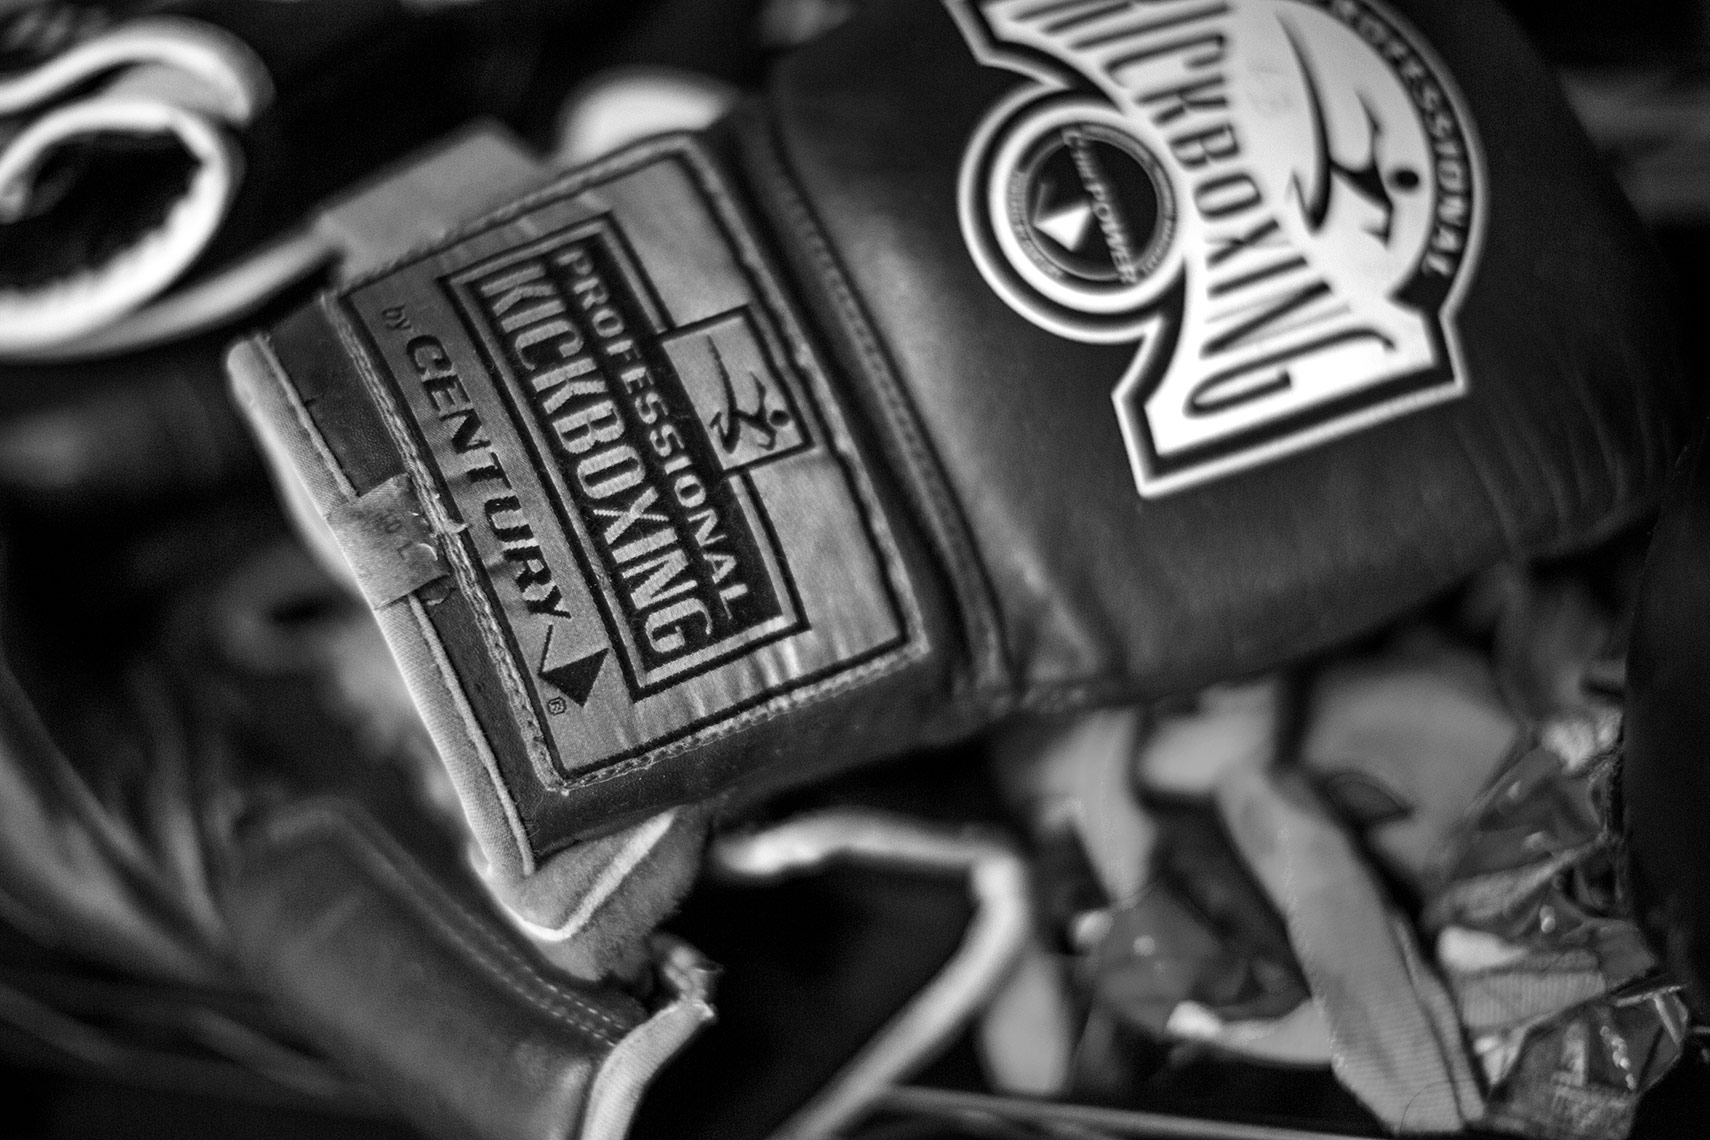 Black and white picture of their regulation kickboxing training gloves lying on the mat